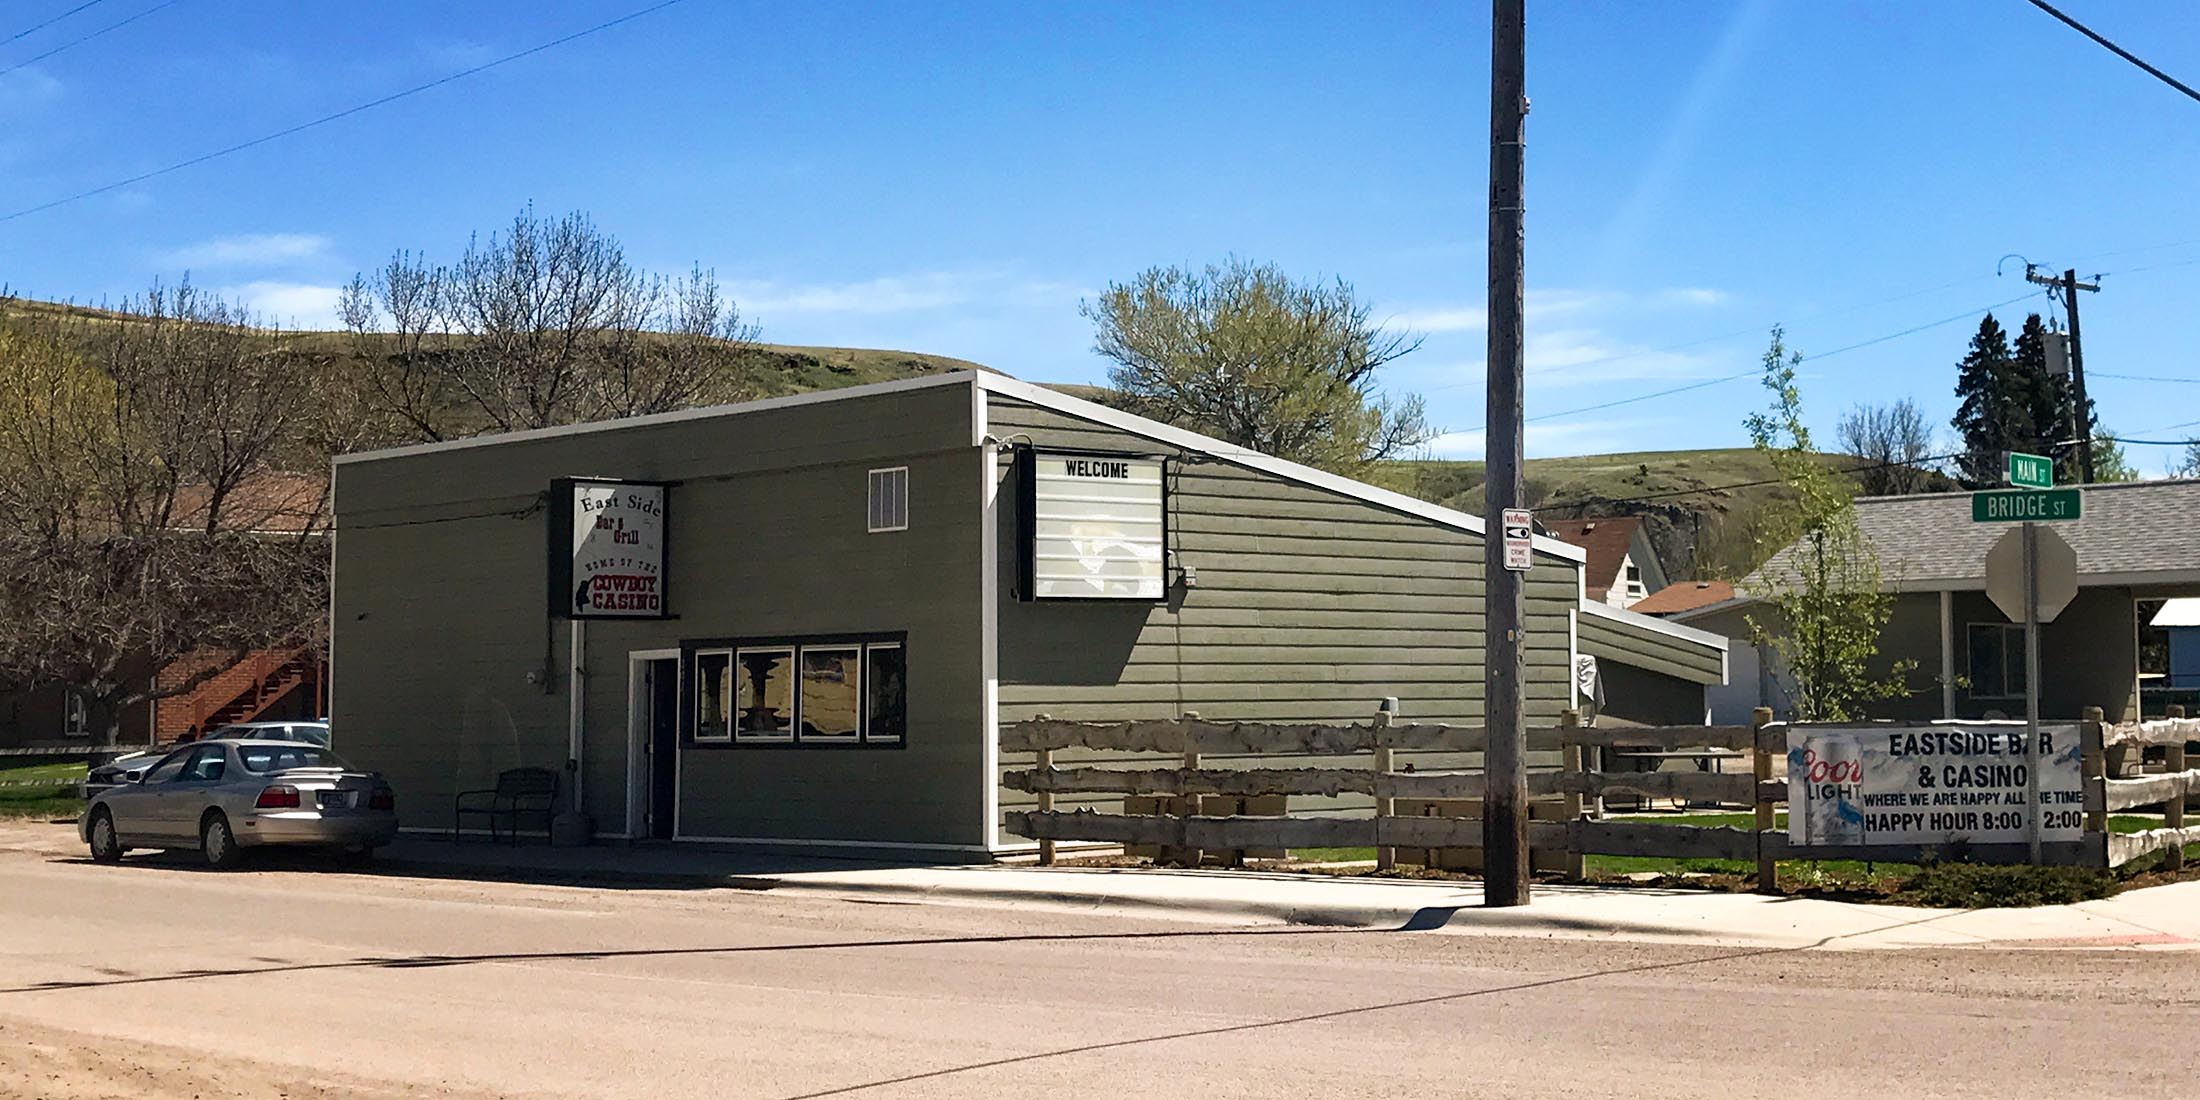 A great place to find a bite to eat, drink and good times! Located in Belt, Montana - Cascade County.